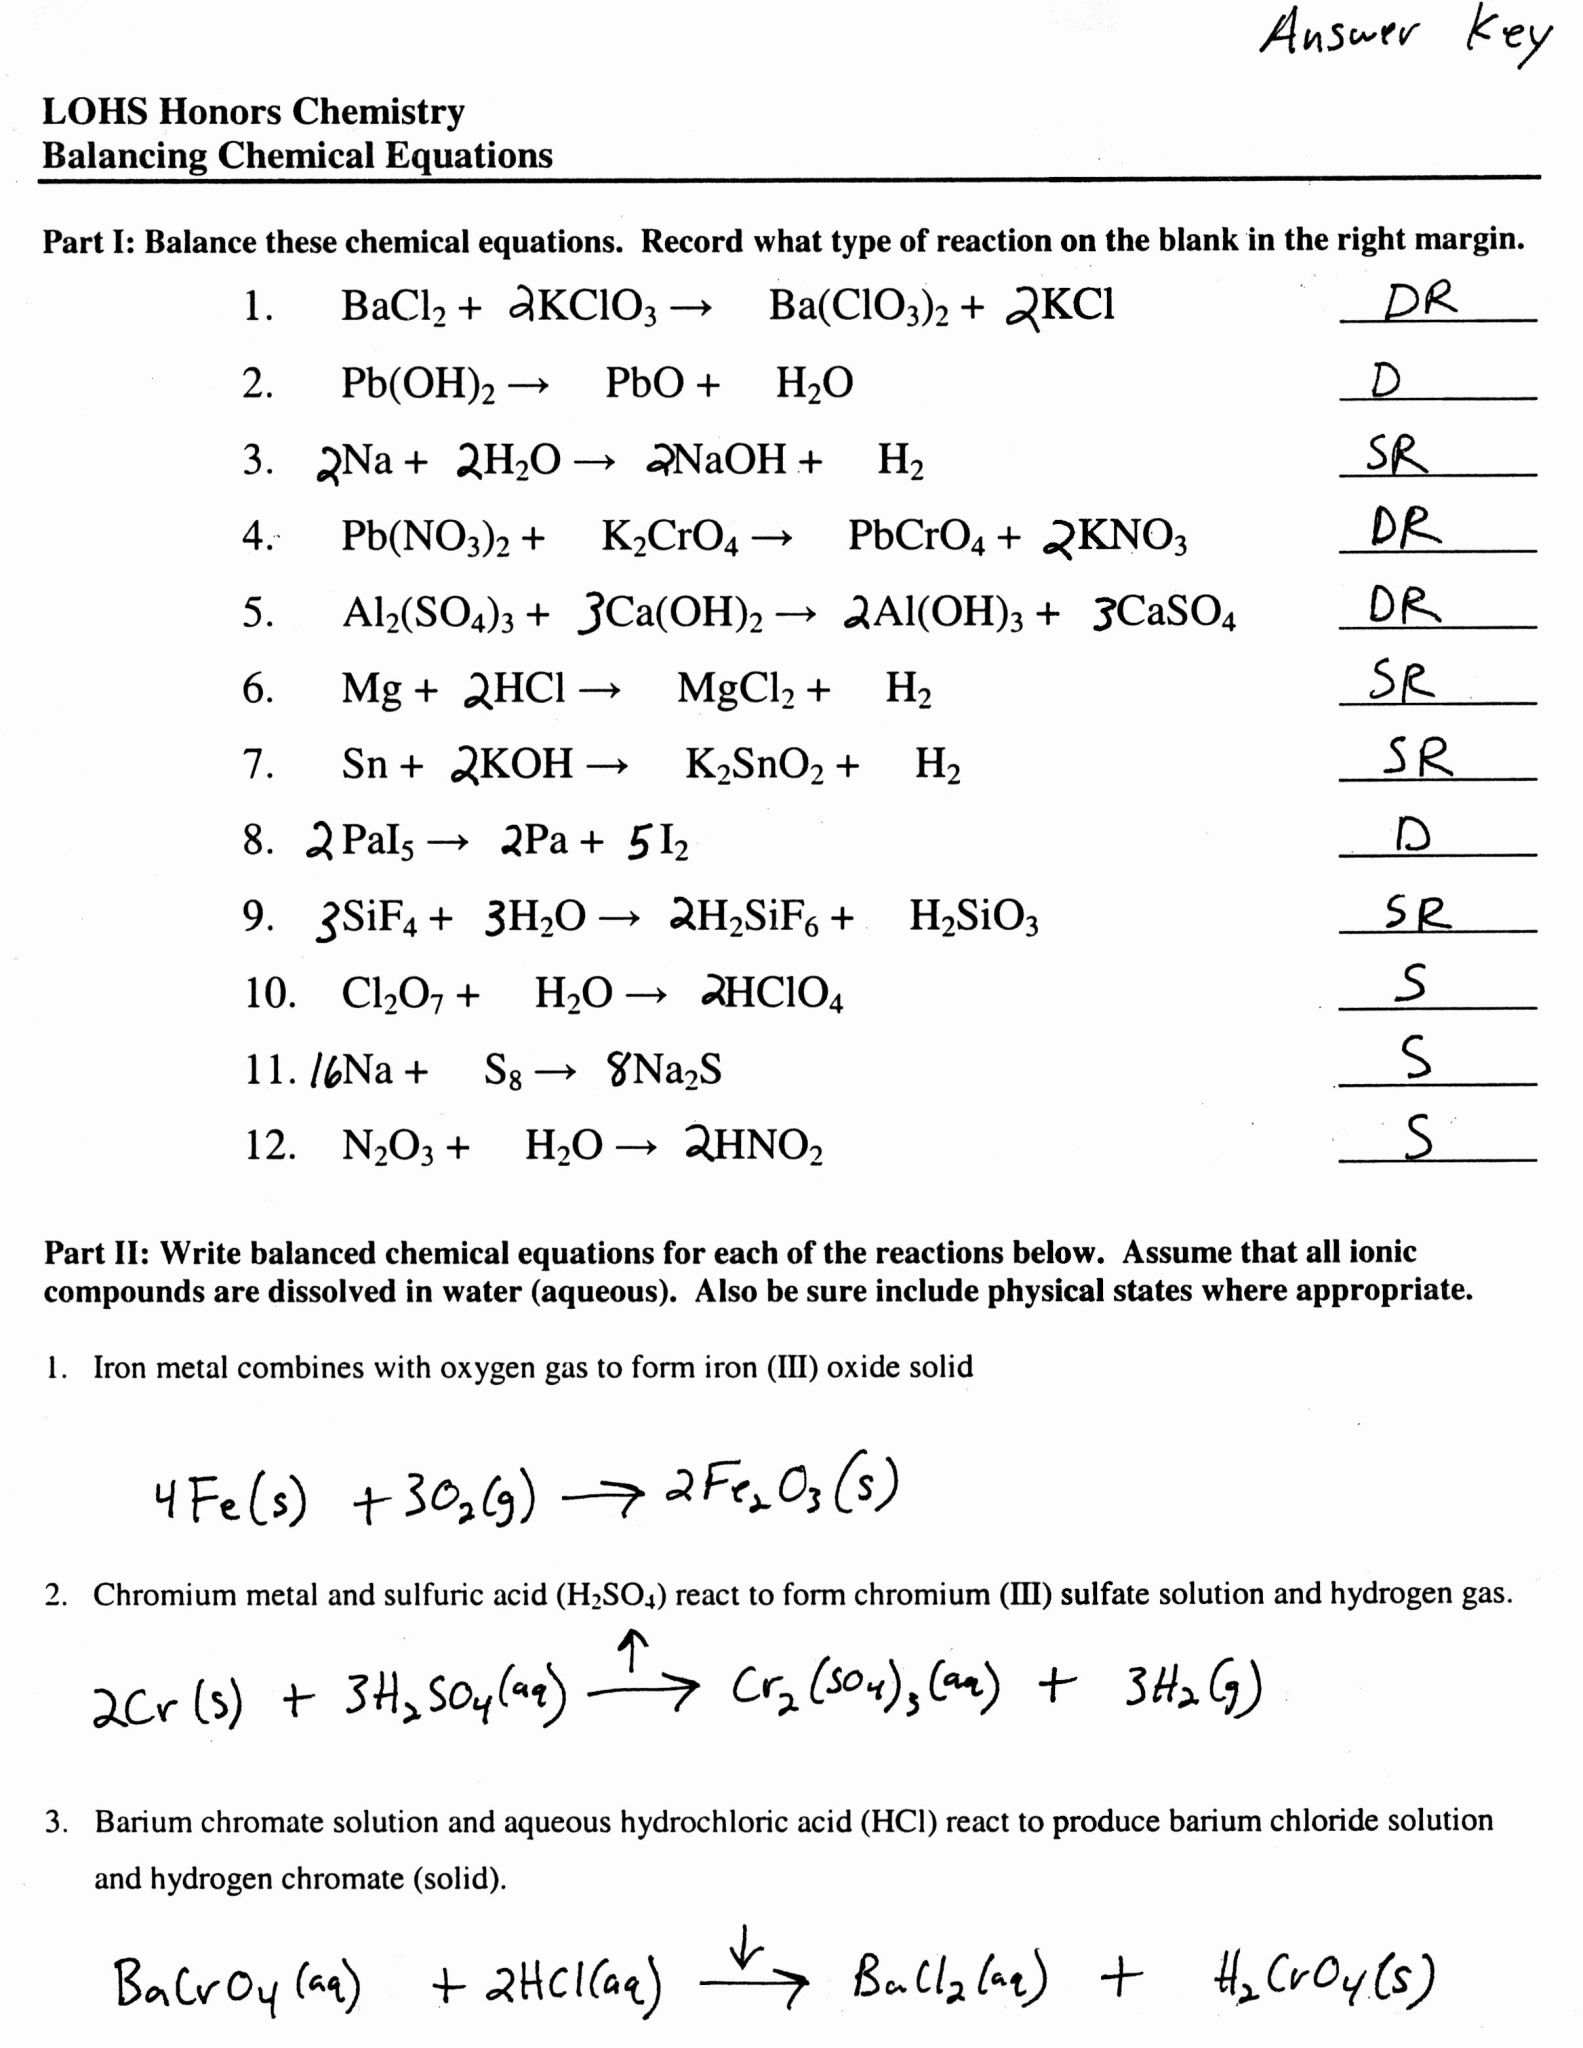 Balancing Chemical Equations Worksheet 1 Answer Key